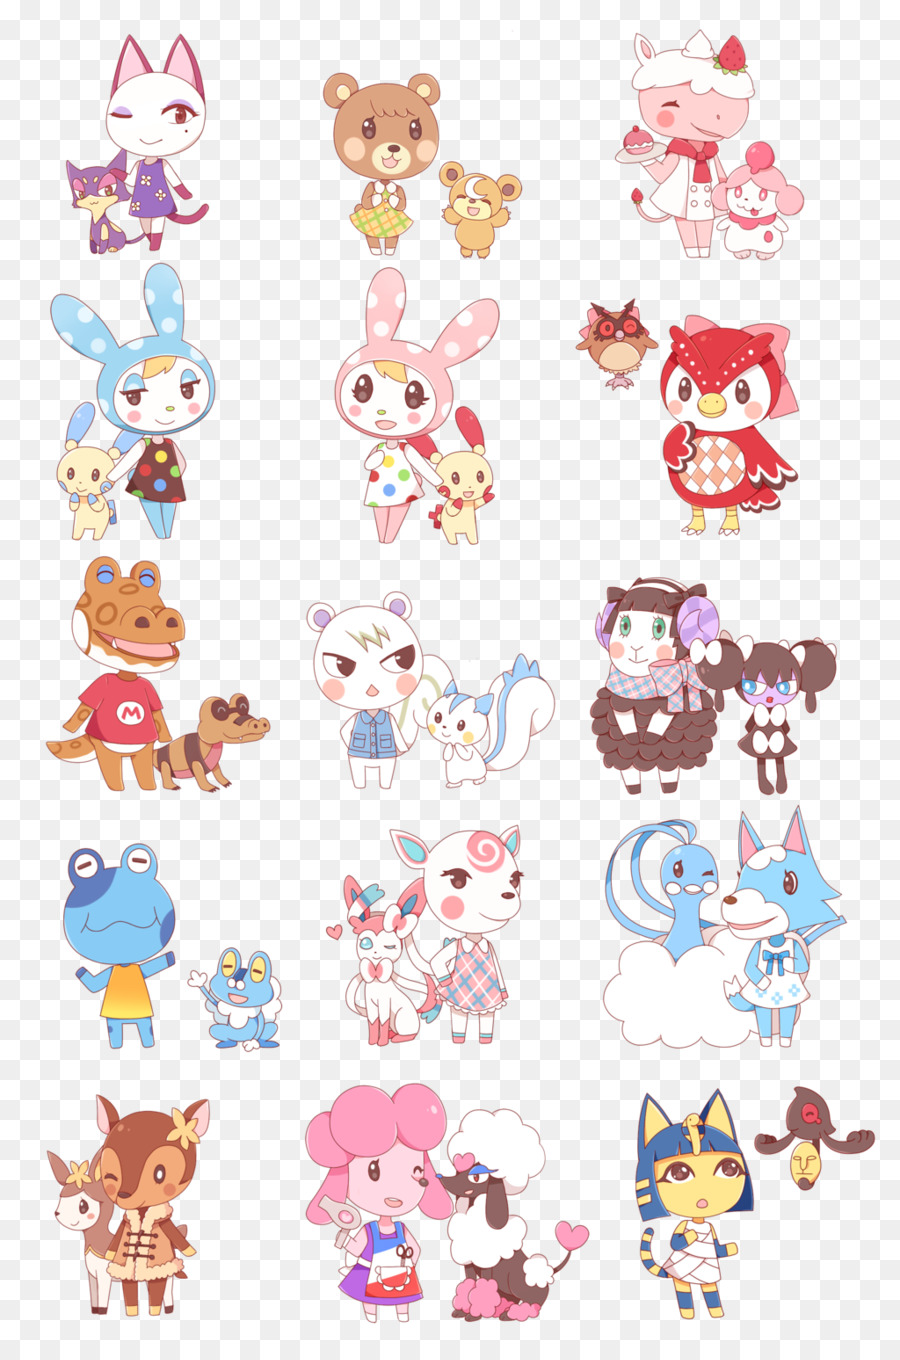 Animal Crossing New Leaf Pink png download - 1024*1536 - Free